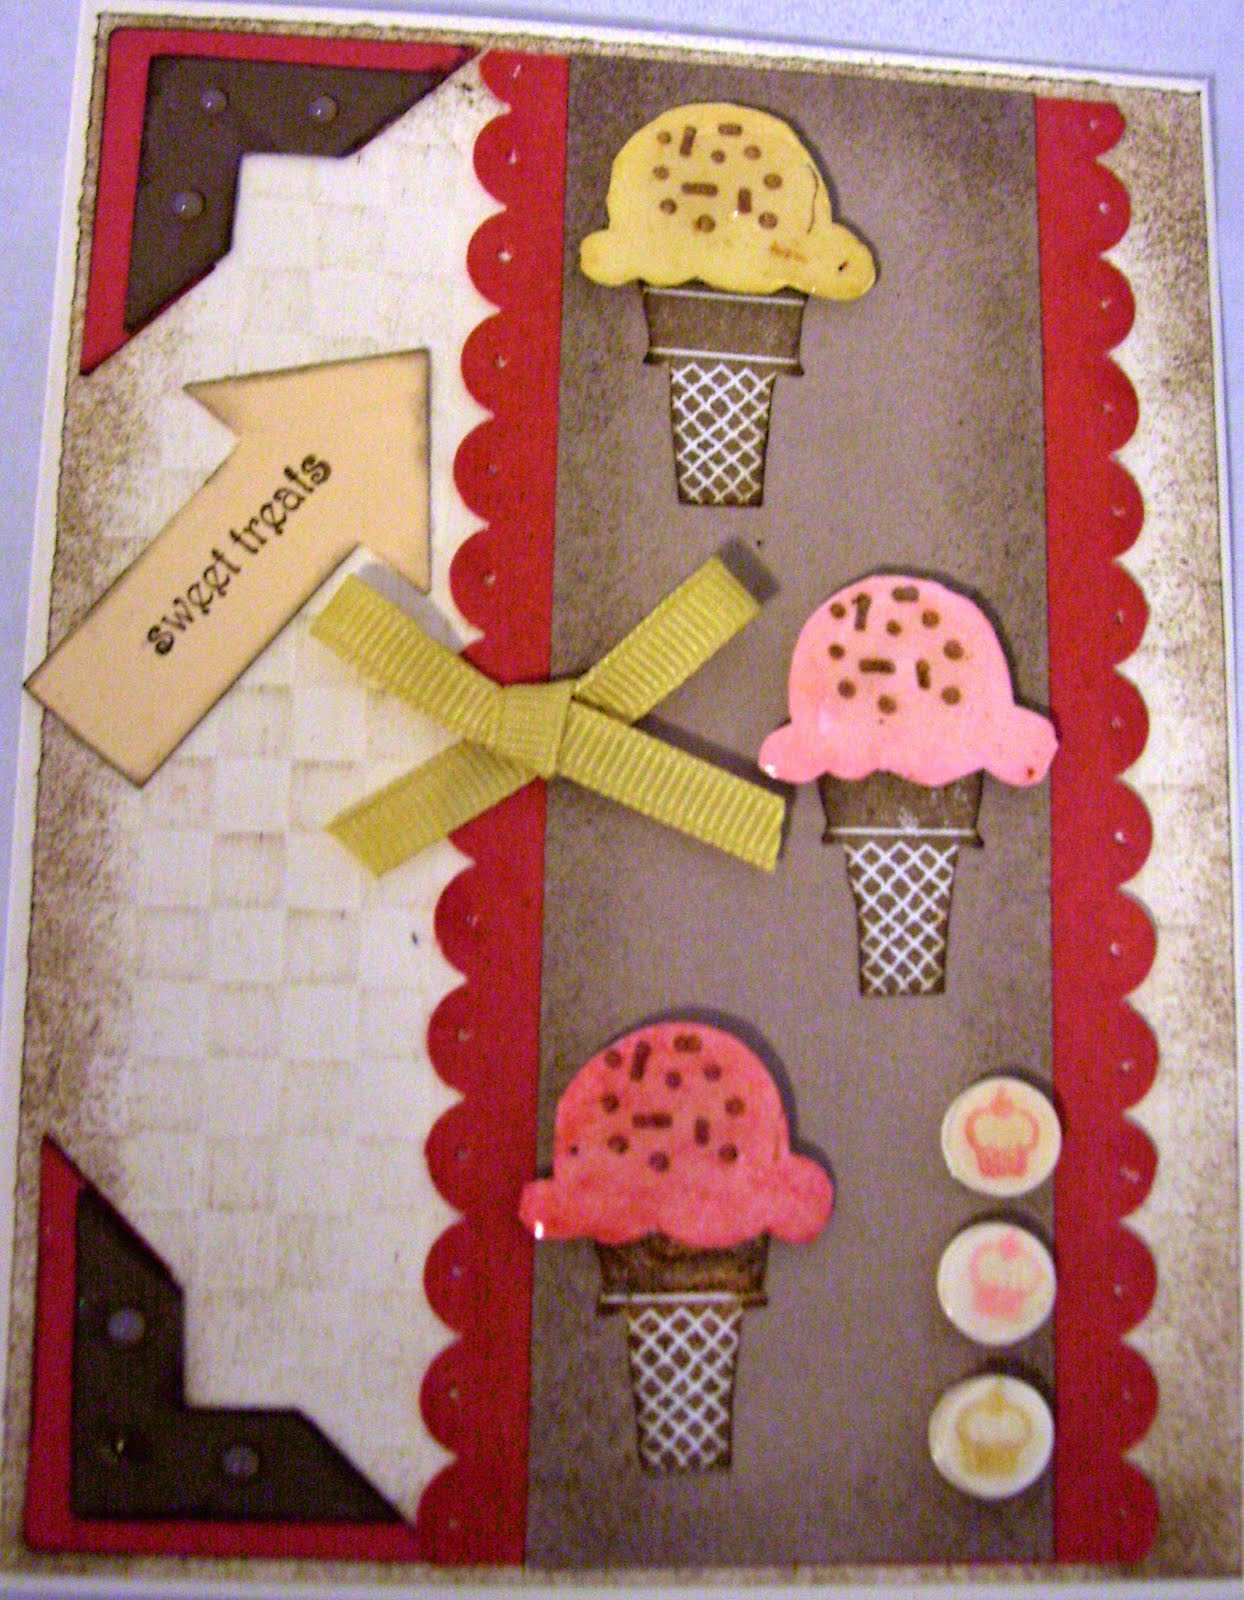 http://3.bp.blogspot.com/_gZkaQFfEzjw/S-N-xR_cM0I/AAAAAAAAA1o/jb3LLjoSC5c/s1600/Sweet+Treats+-+A+Just+Add+Ink+Colour+challenge+%2316_edited.jpg